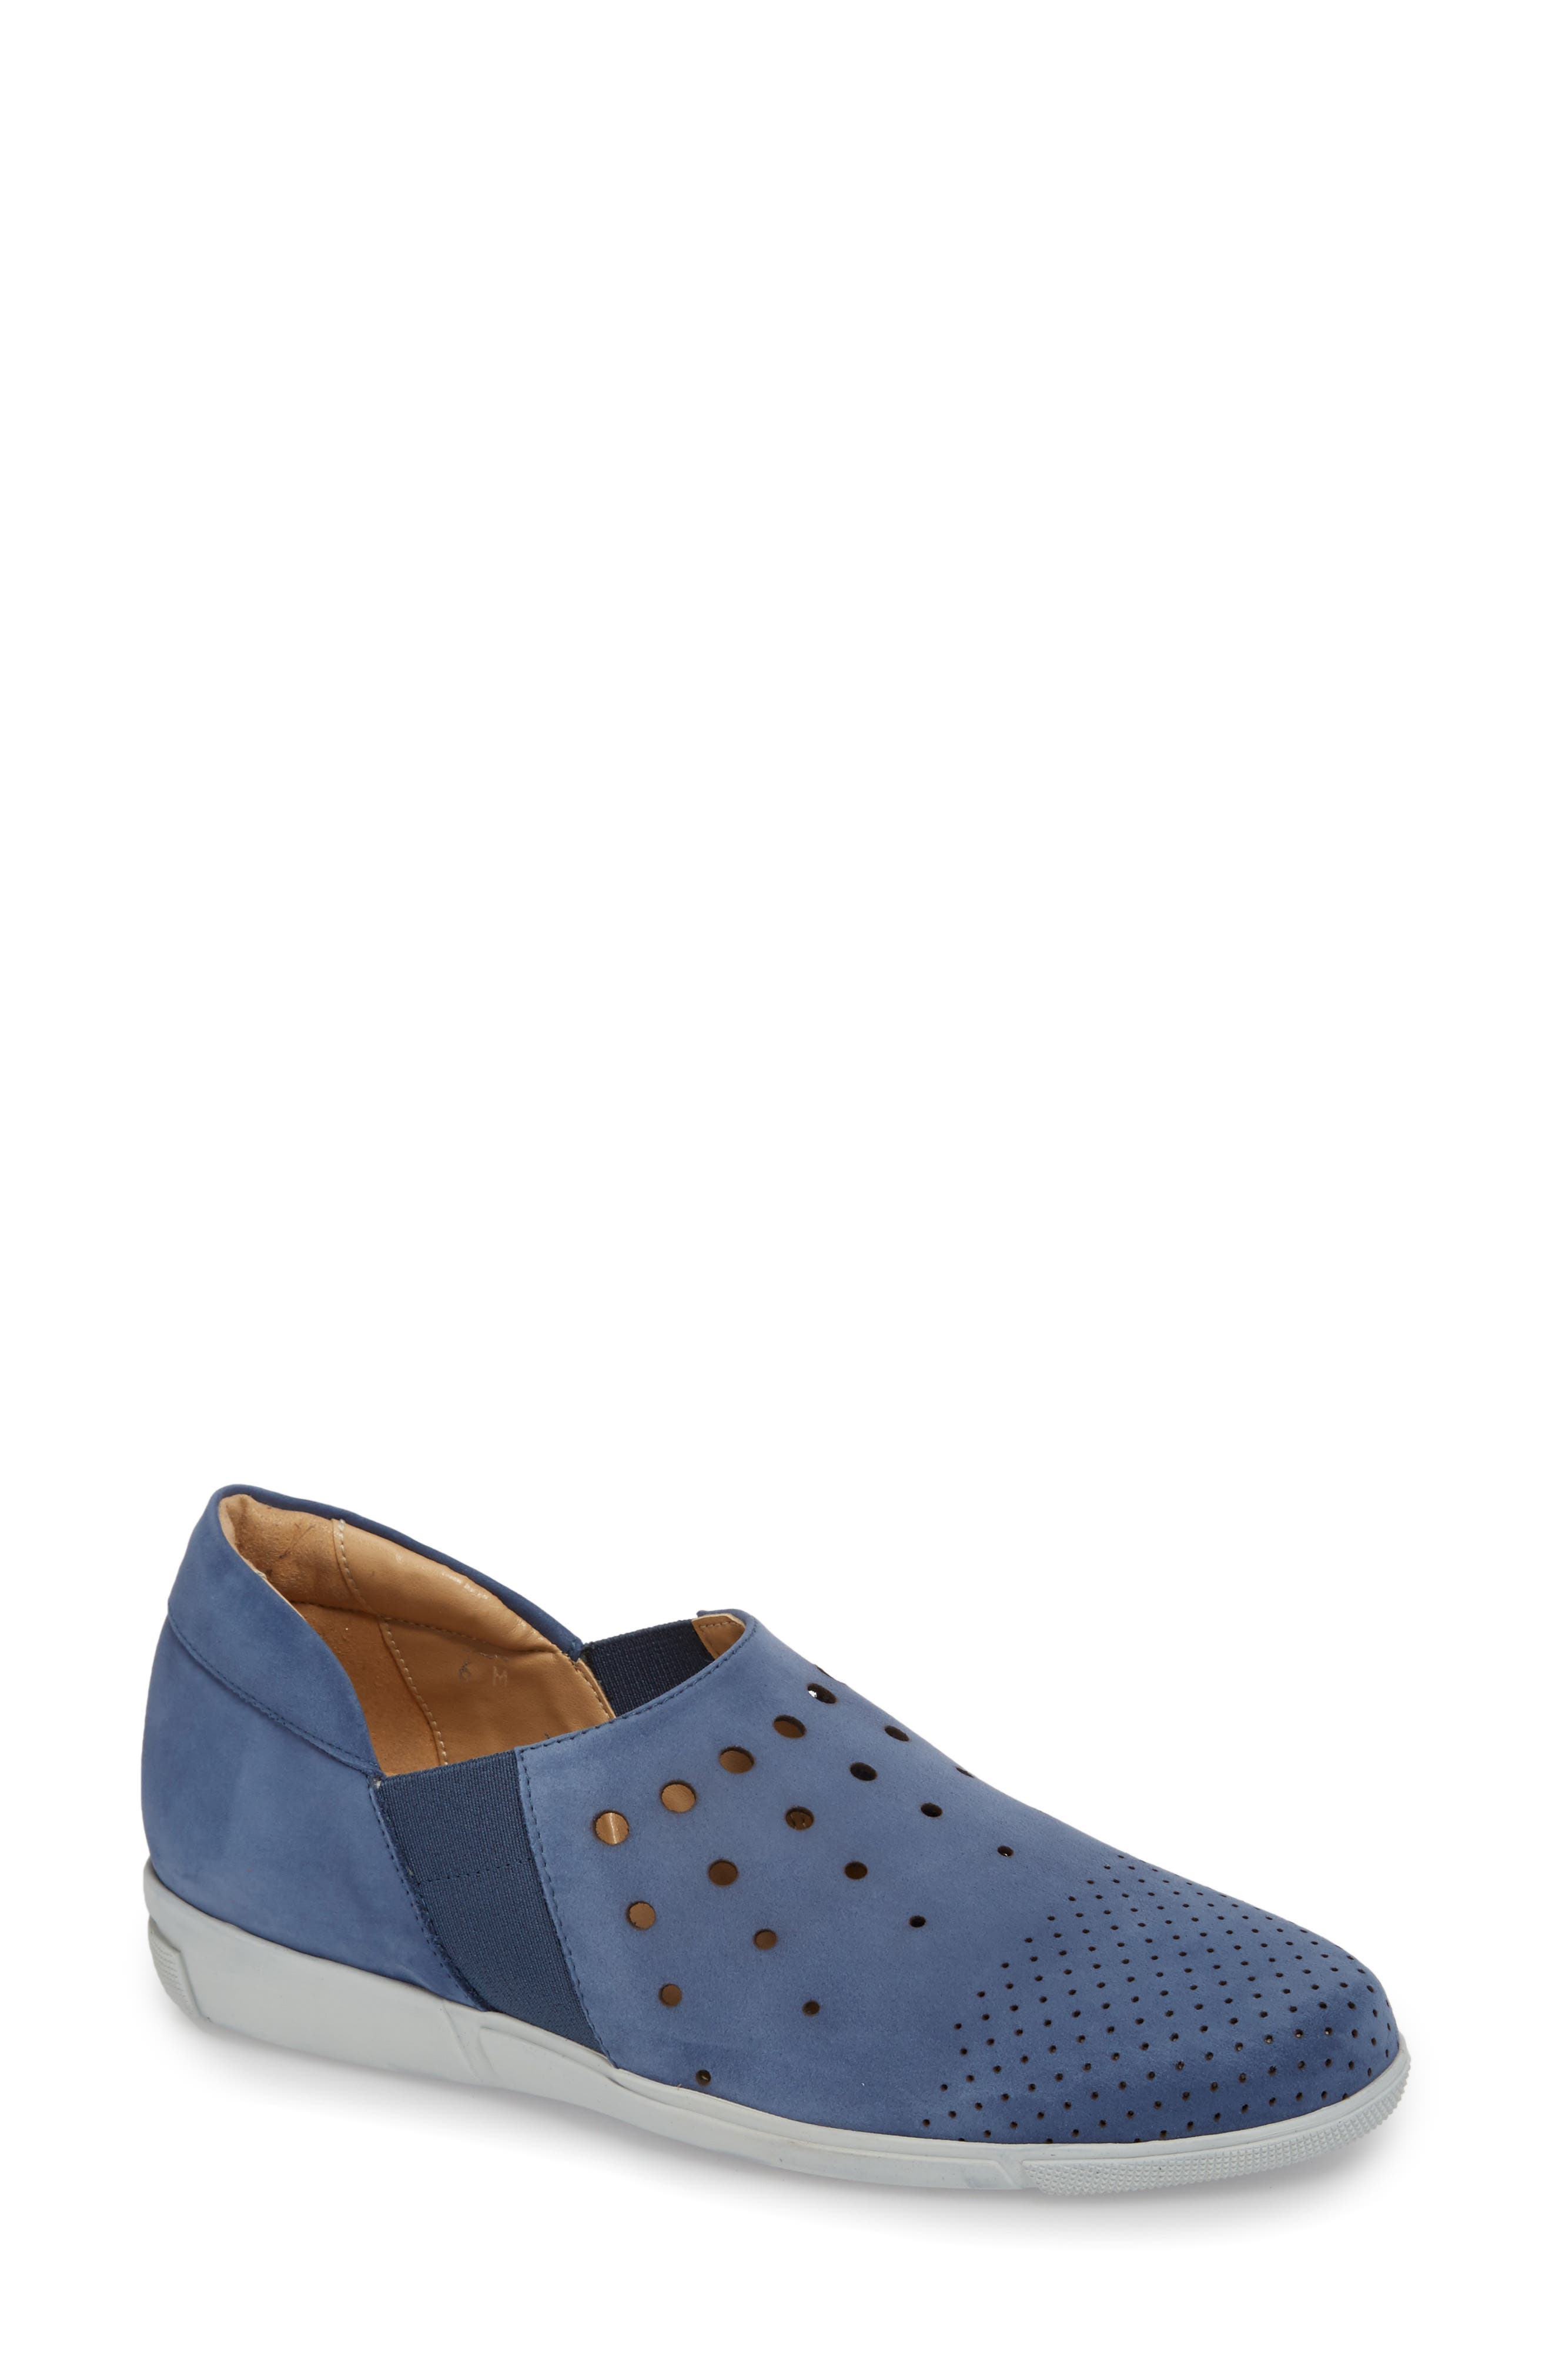 Ditty Perforated Slip-On,                         Main,                         color, Jeans Soft Nubuck